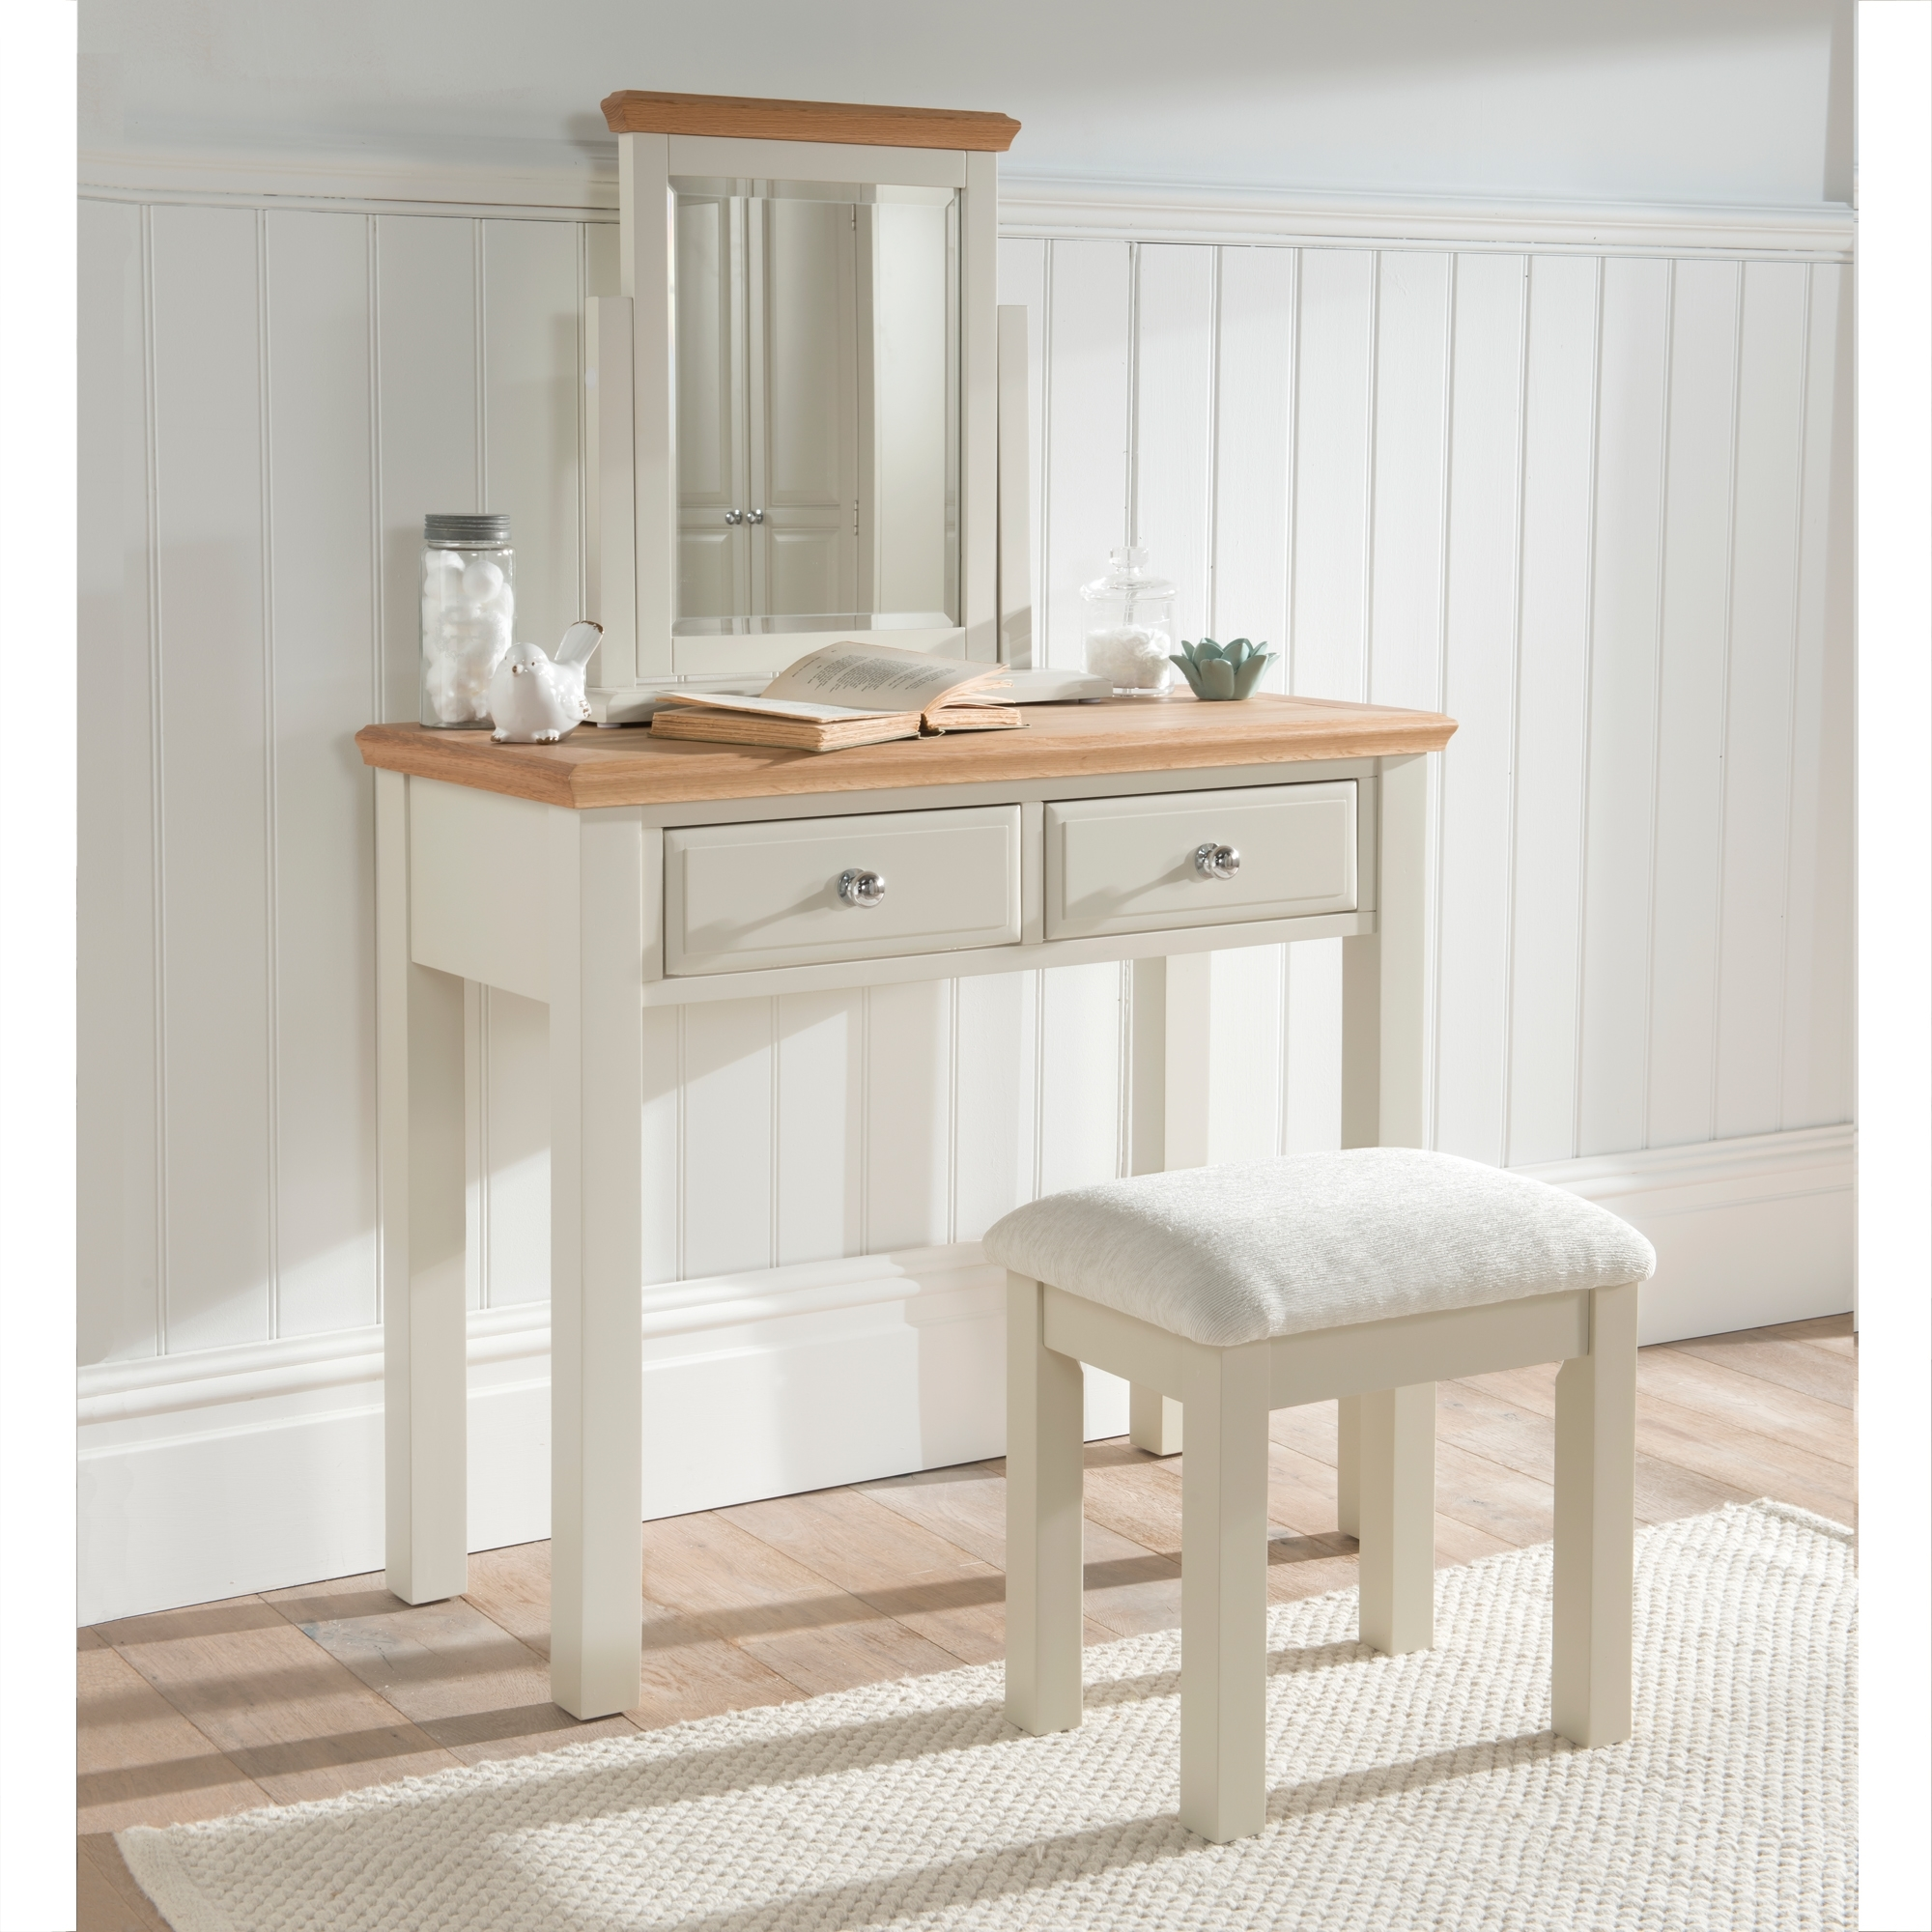 Remi shabby chic dressing table set french furniture remi shabby chic dressing table set geotapseo Images